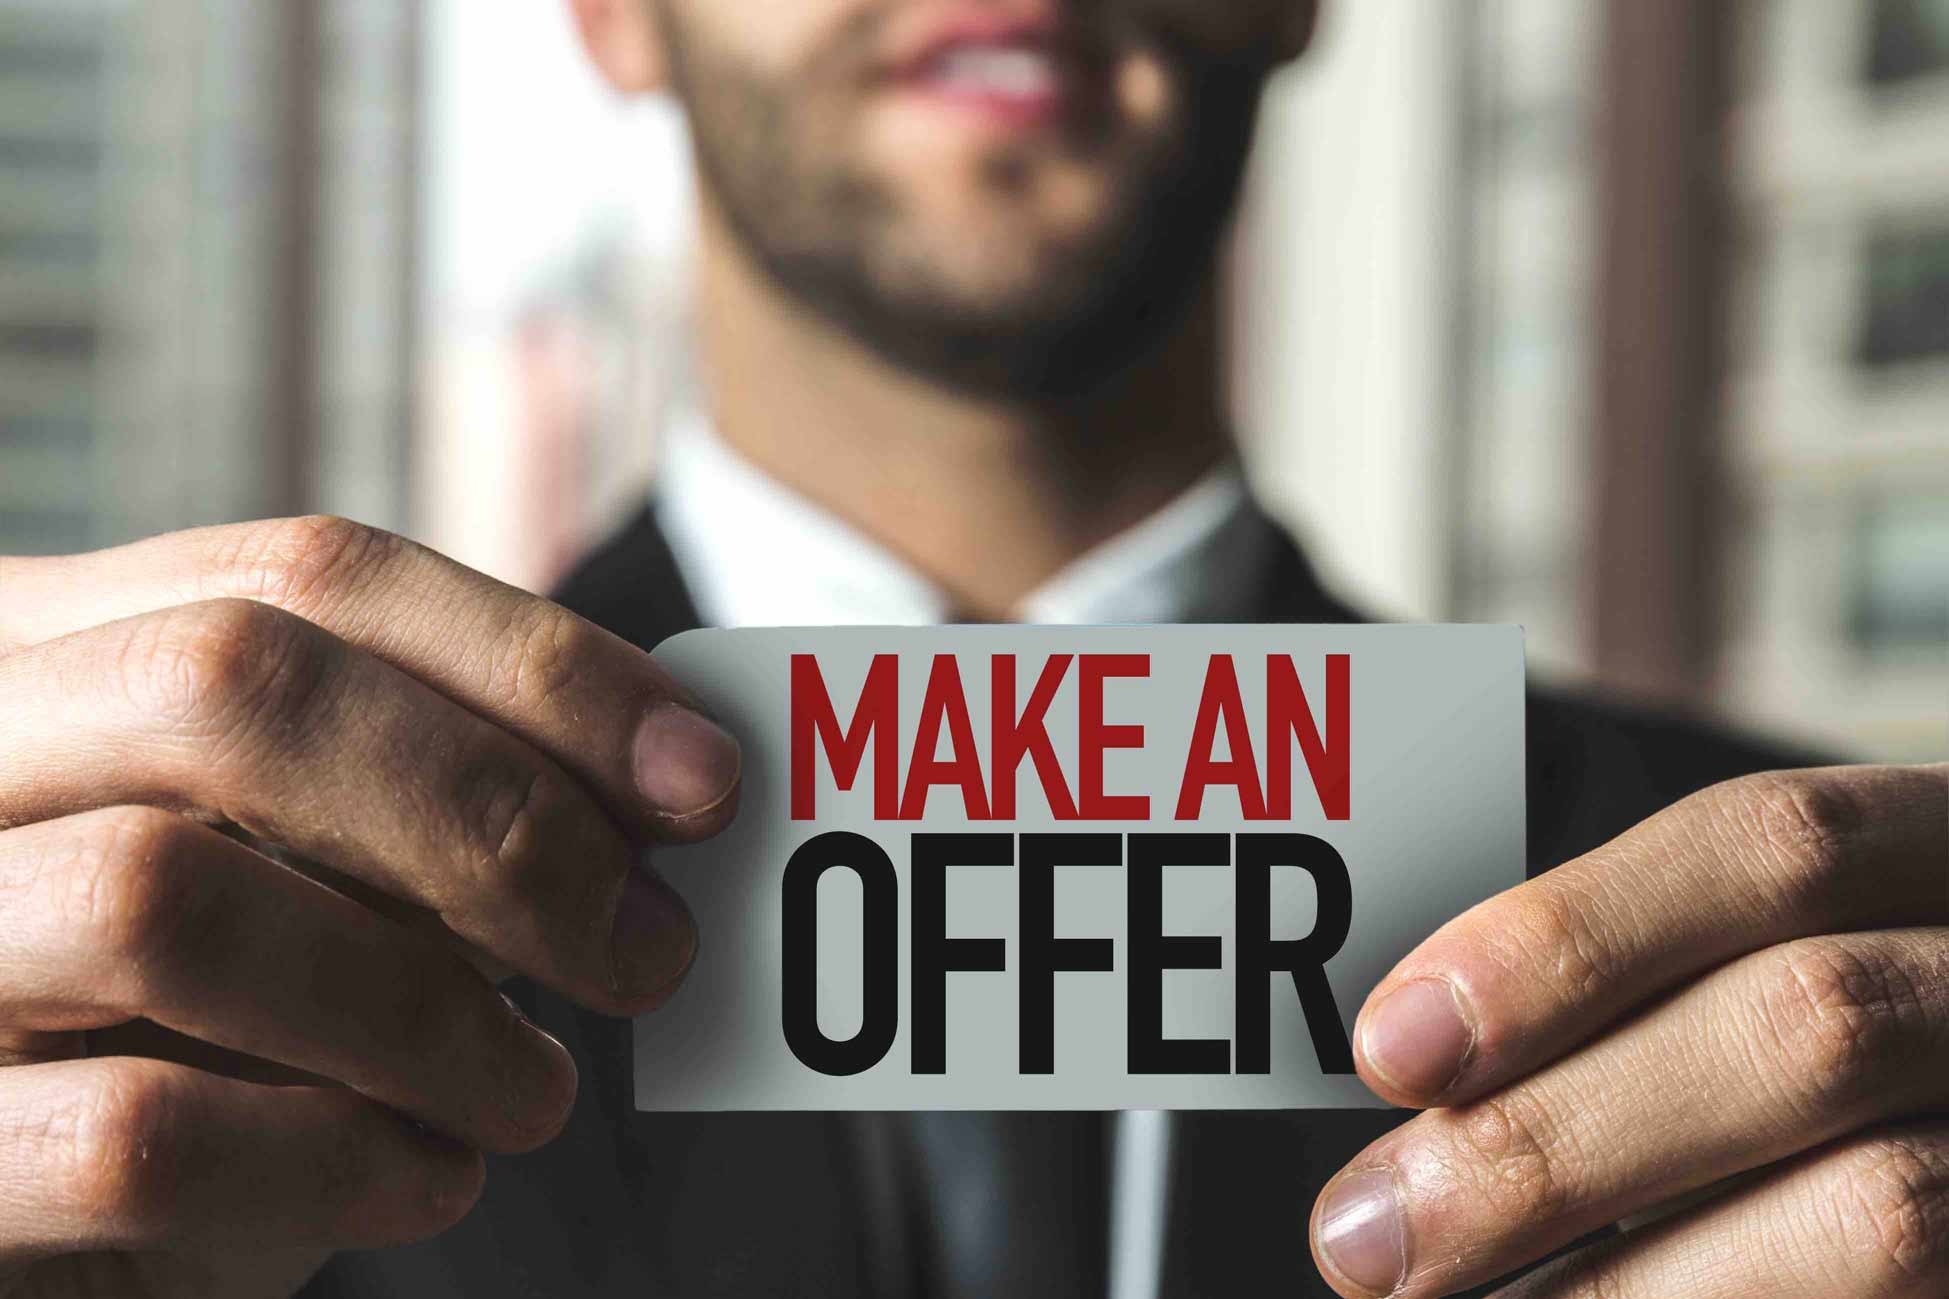 How Much Should I Offer? Making An Offer Isn't Rocket Science